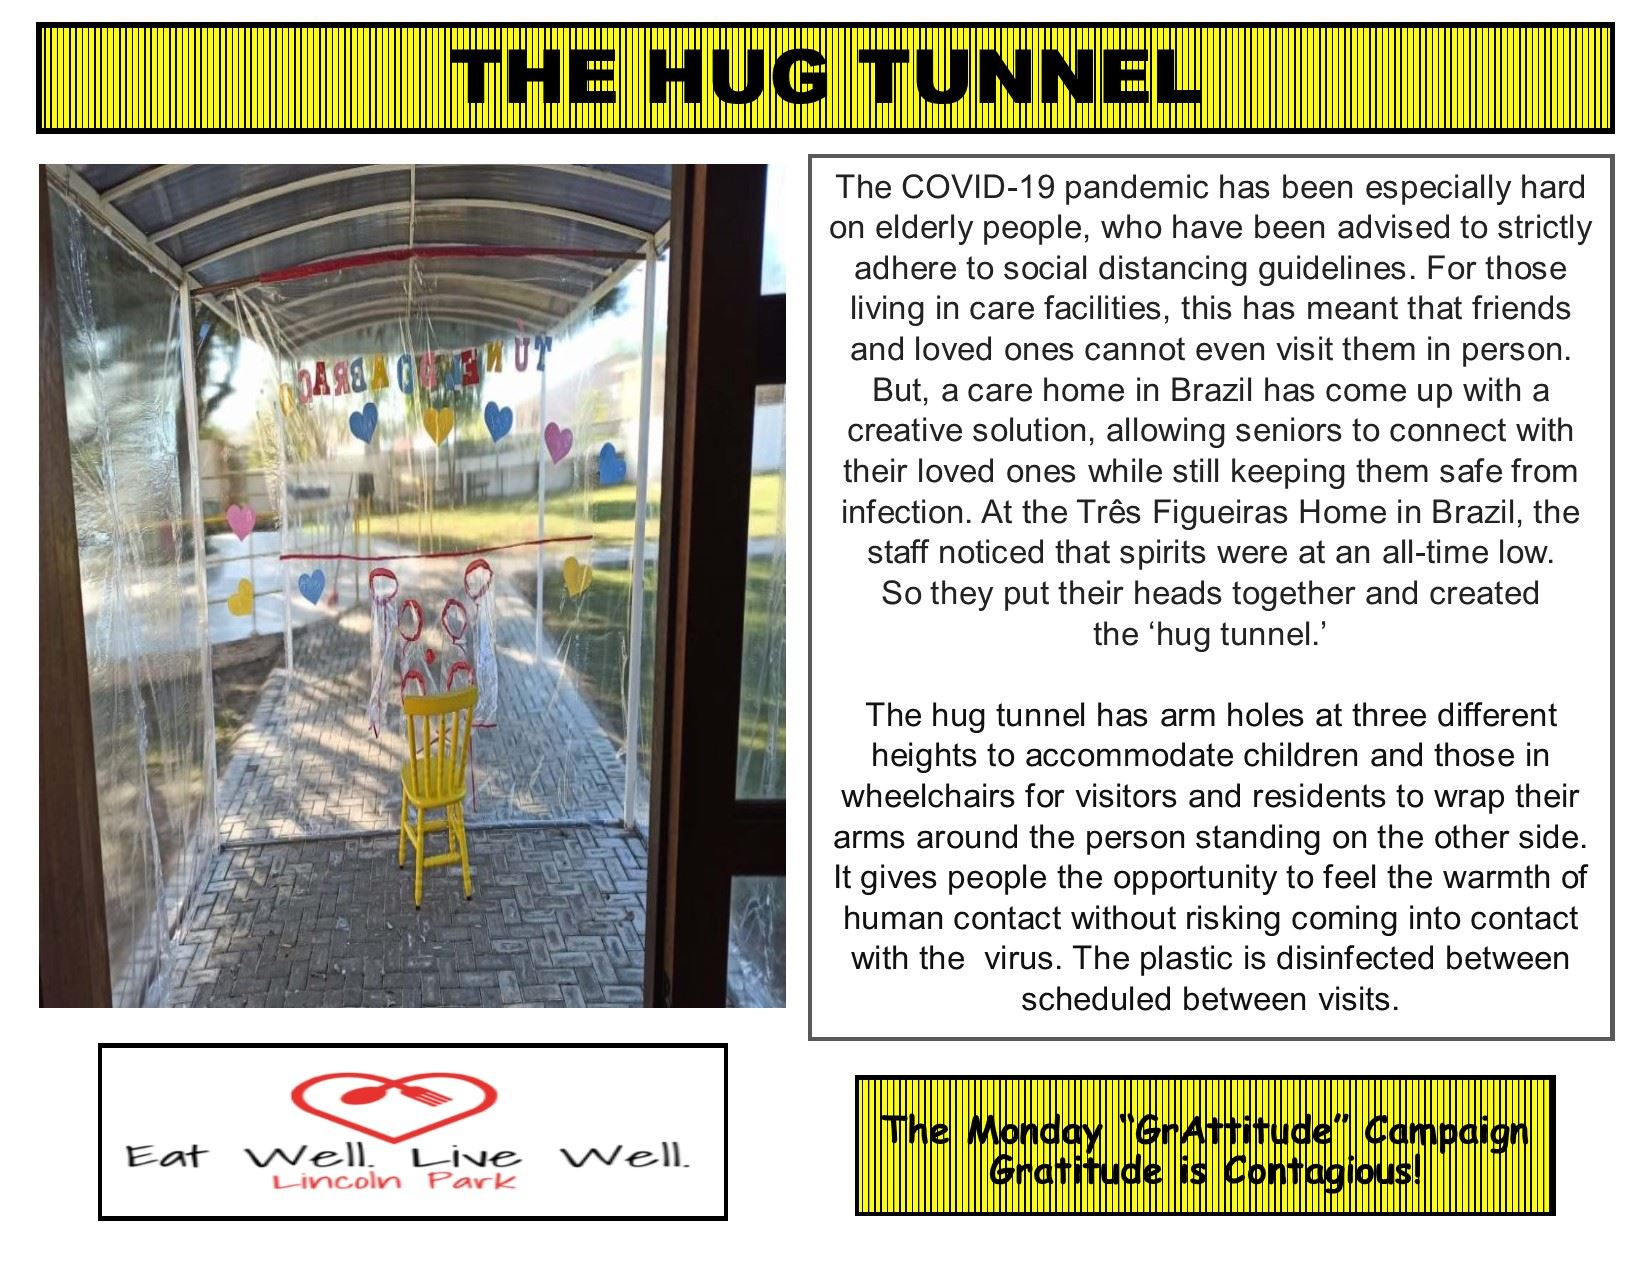 Healthy Monday 6-29-2020 Hug Tunnel